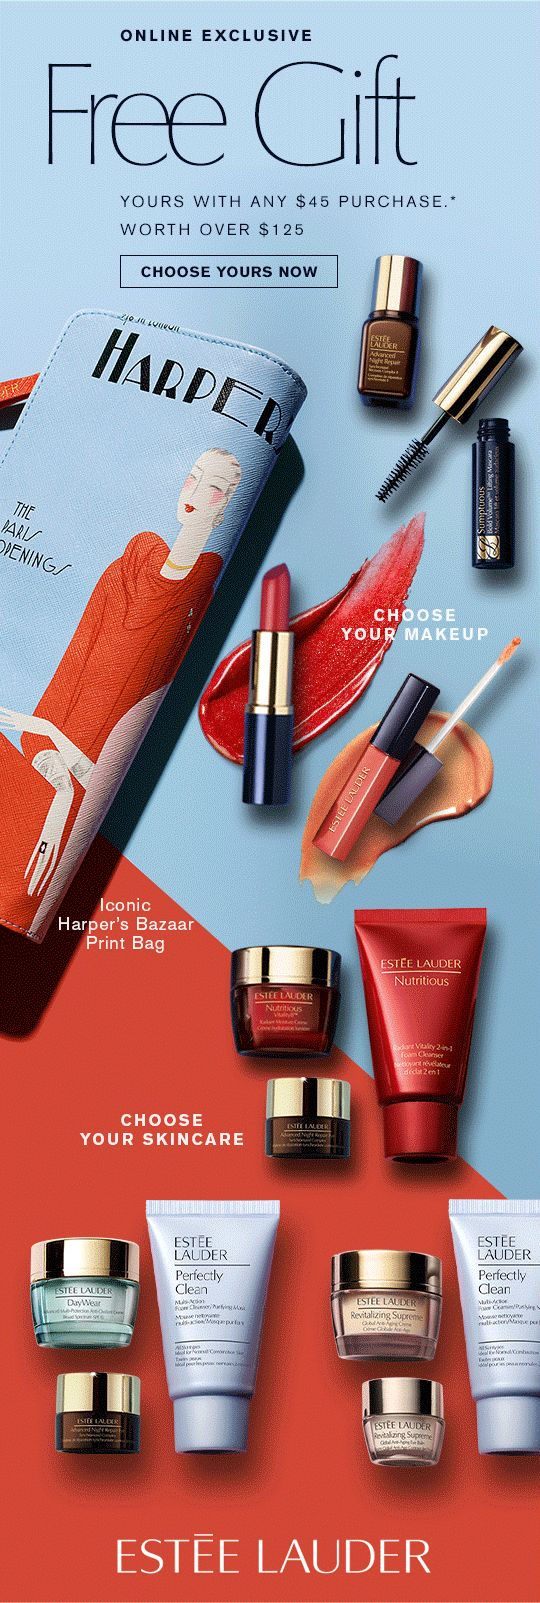 Your Free Gift Starts Today (with your purchase). #Sent : Jan 25th, 2015 #esteelauder #emails #newsletters